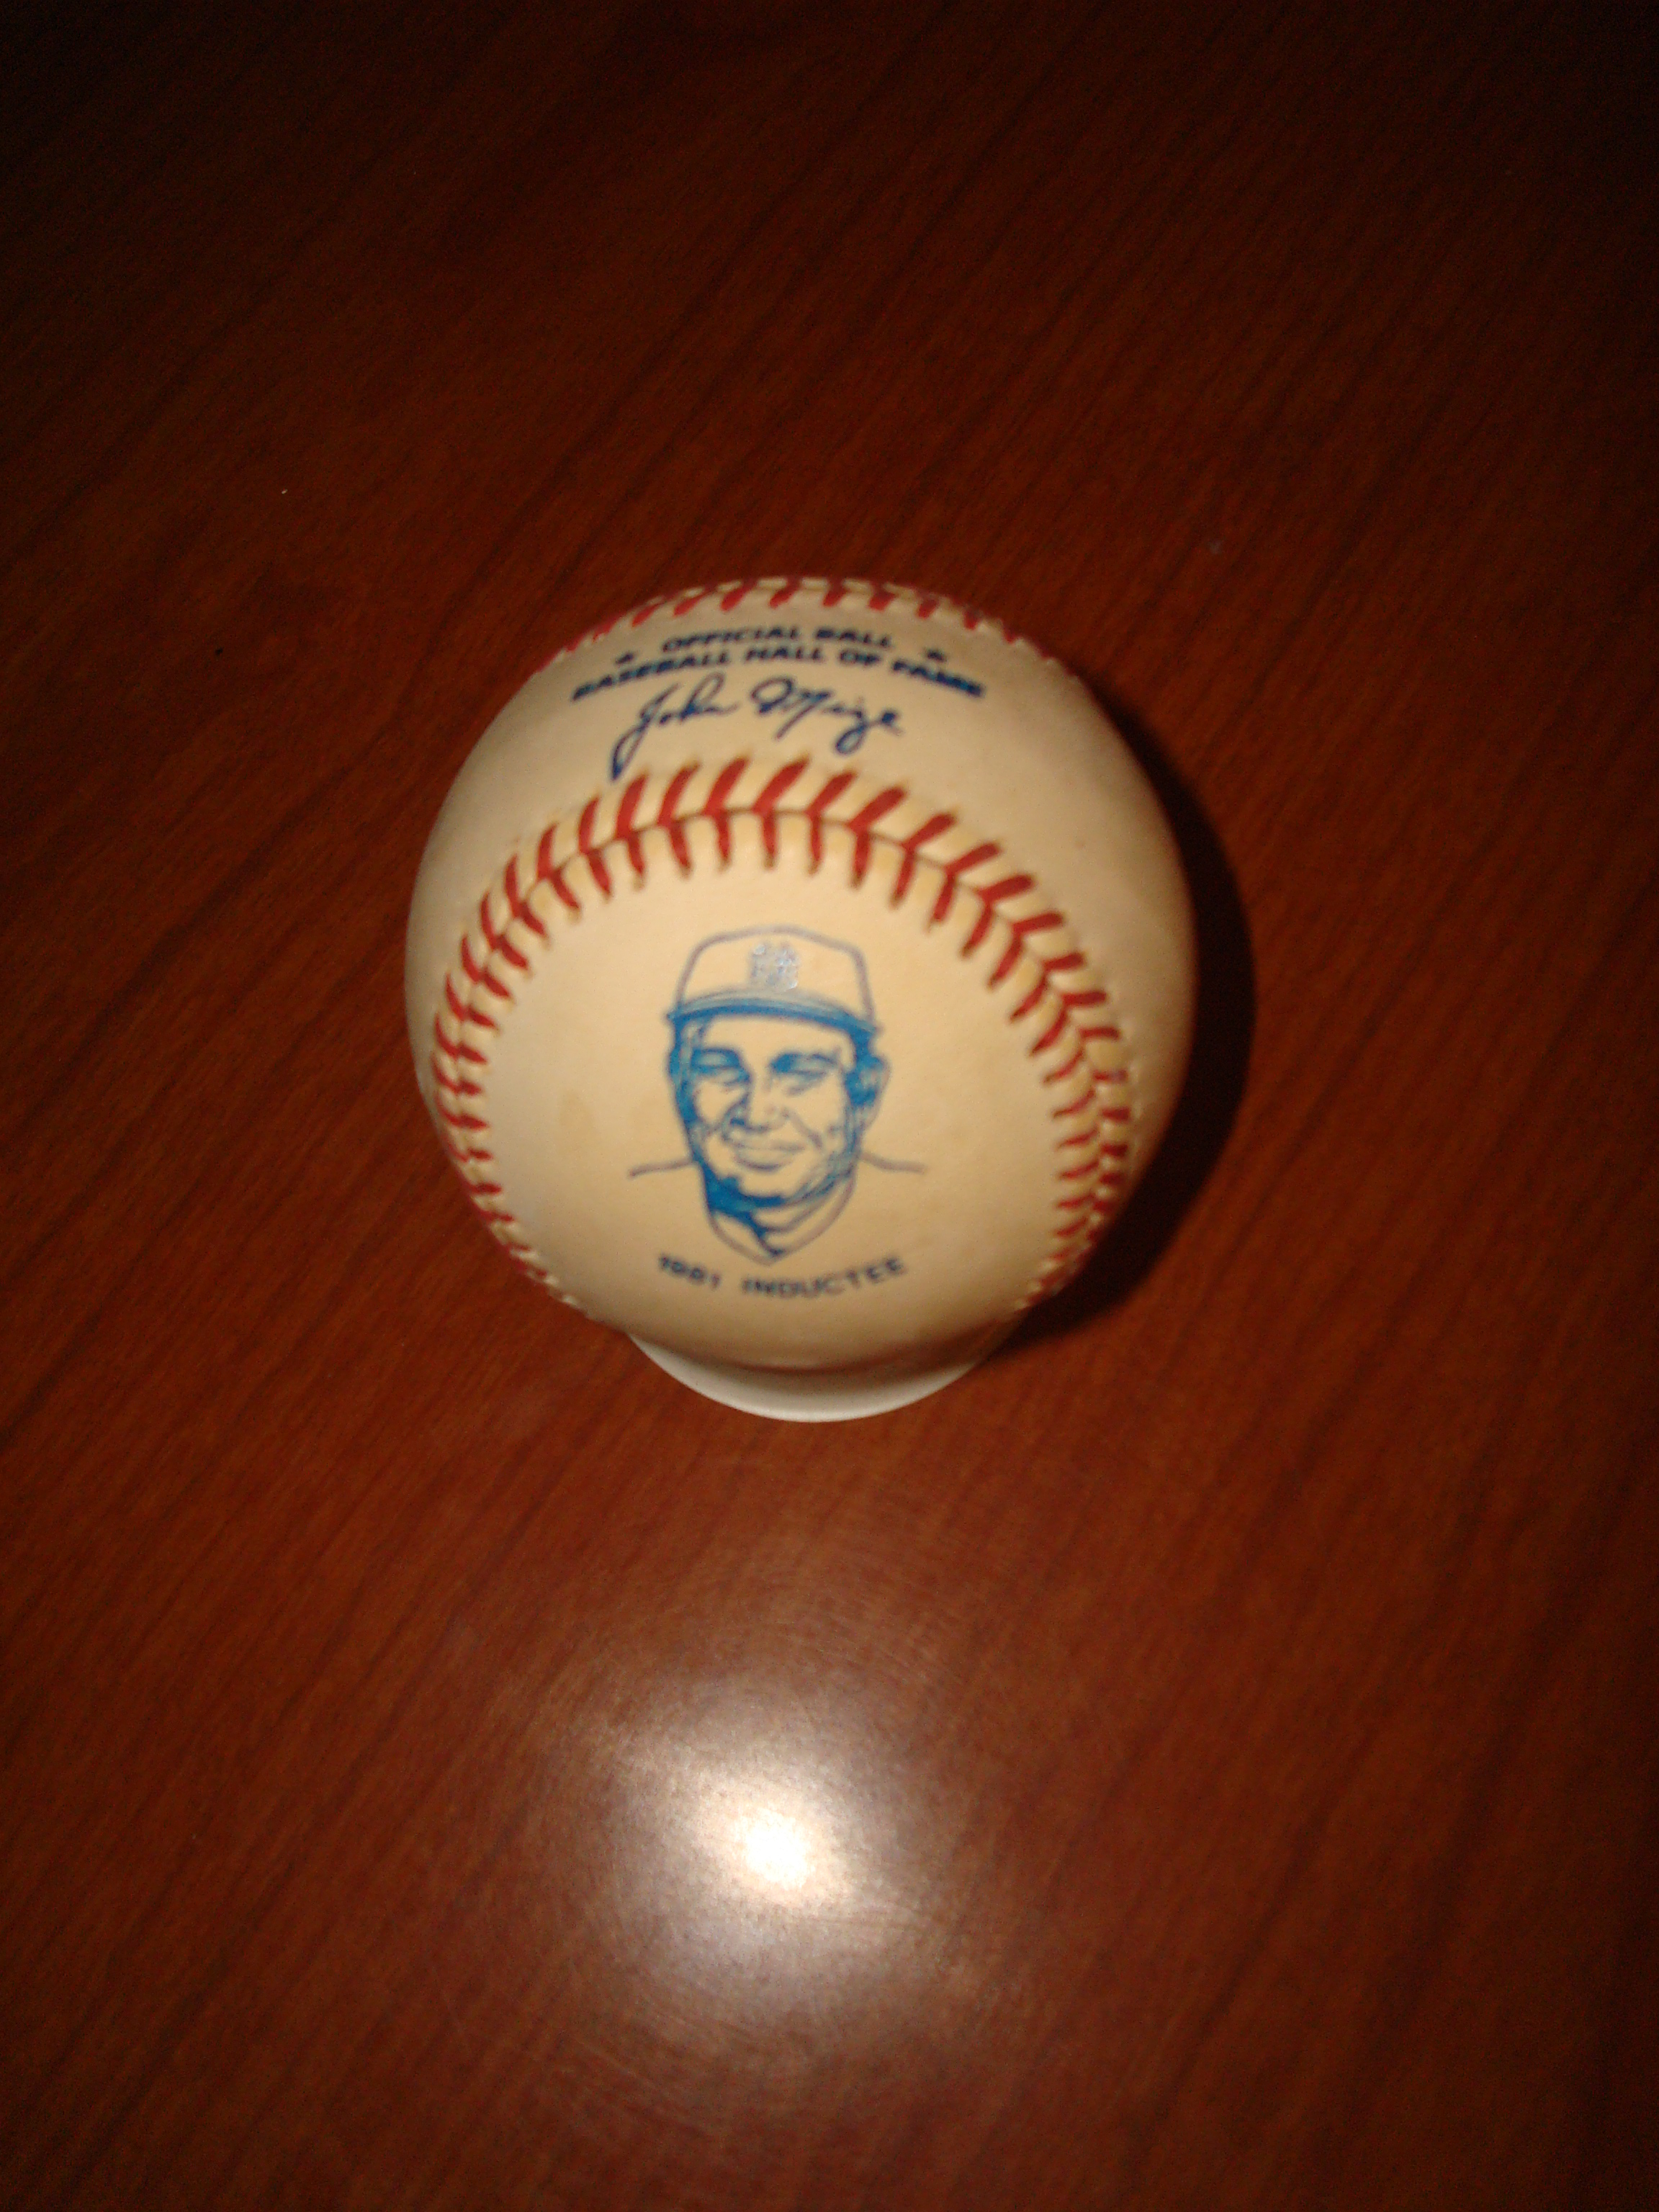 Official Ball Baseball Hall of Fame 1981 Inductee New York Yankees 1B Johnny Mize